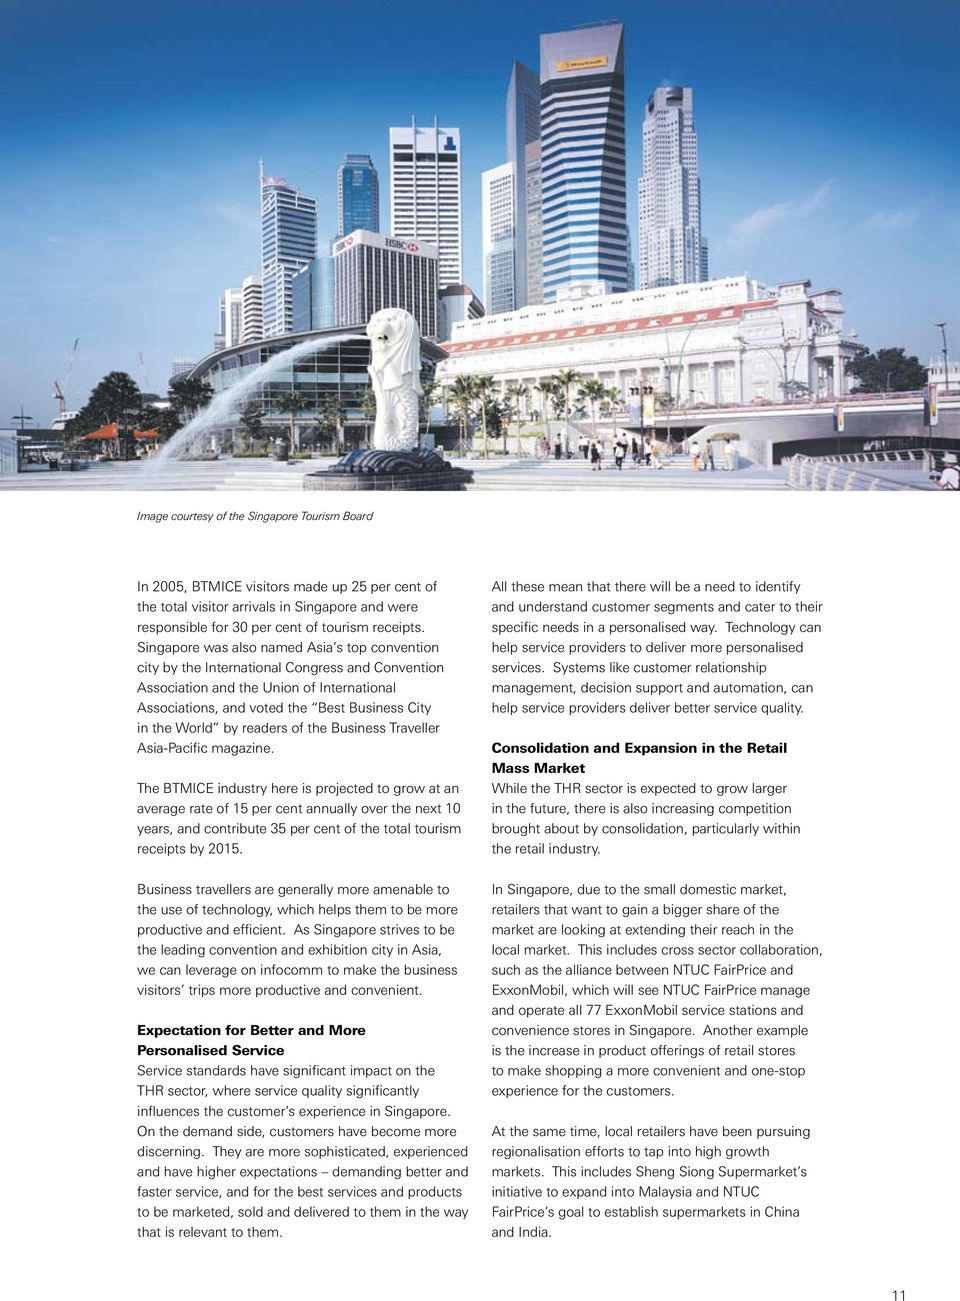 by readers of the Business Traveller Asia-Pacific magazine.